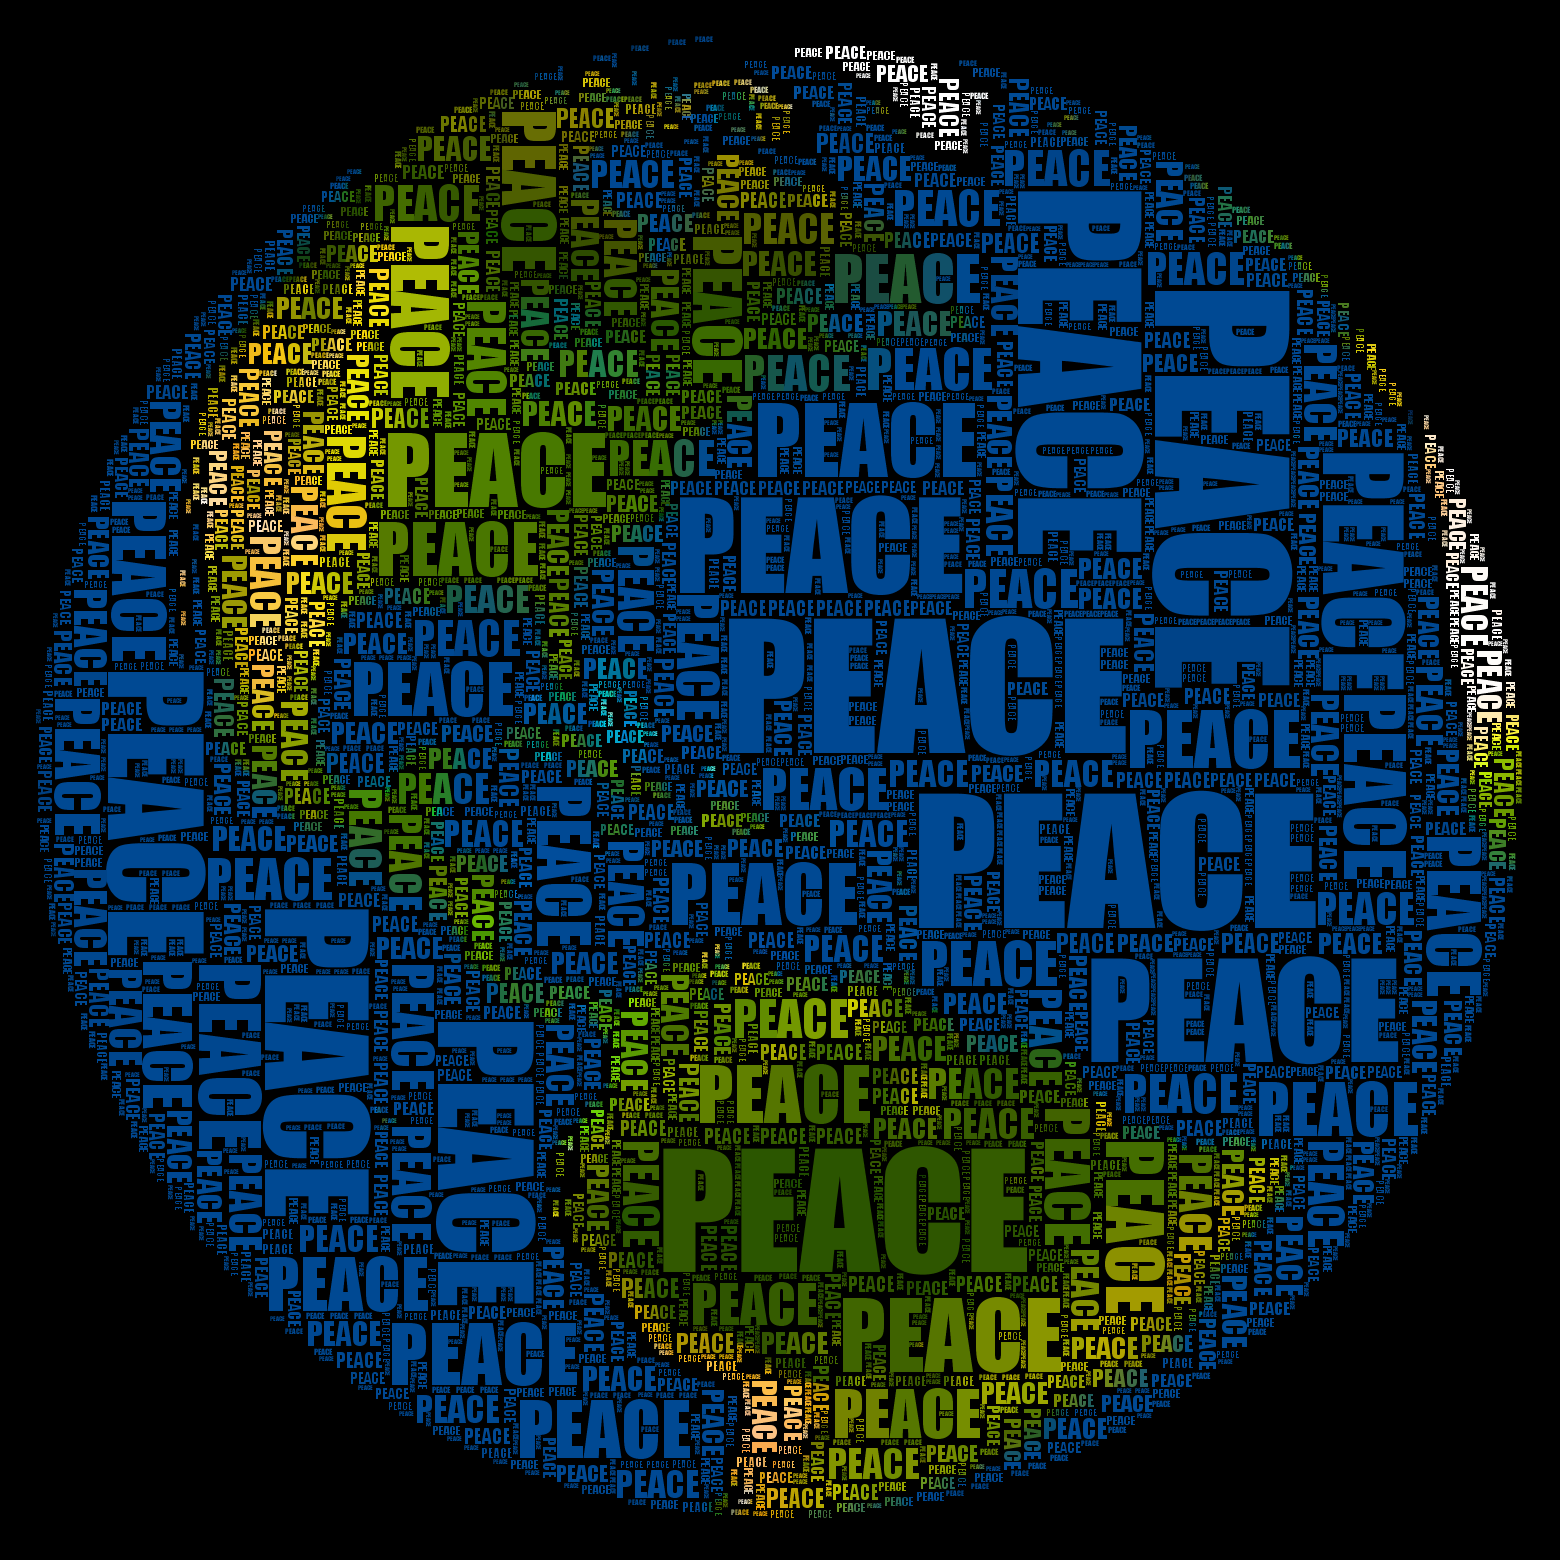 http://cacarc.files.wordpress.com/2010/09/sp_worldpeaceword1.png